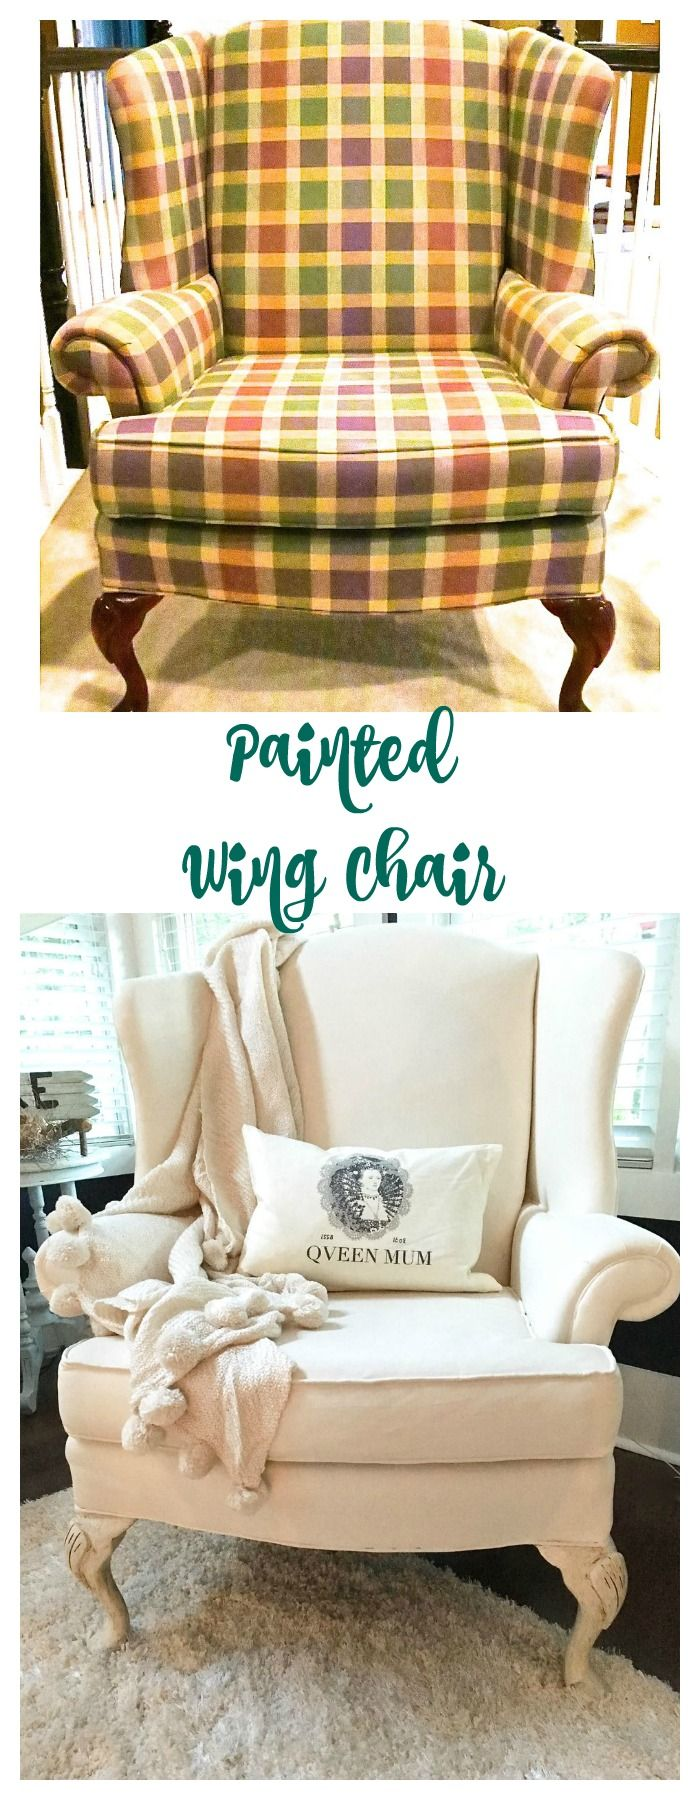 228 best Reupholstering images on Pinterest | Furniture redo ...